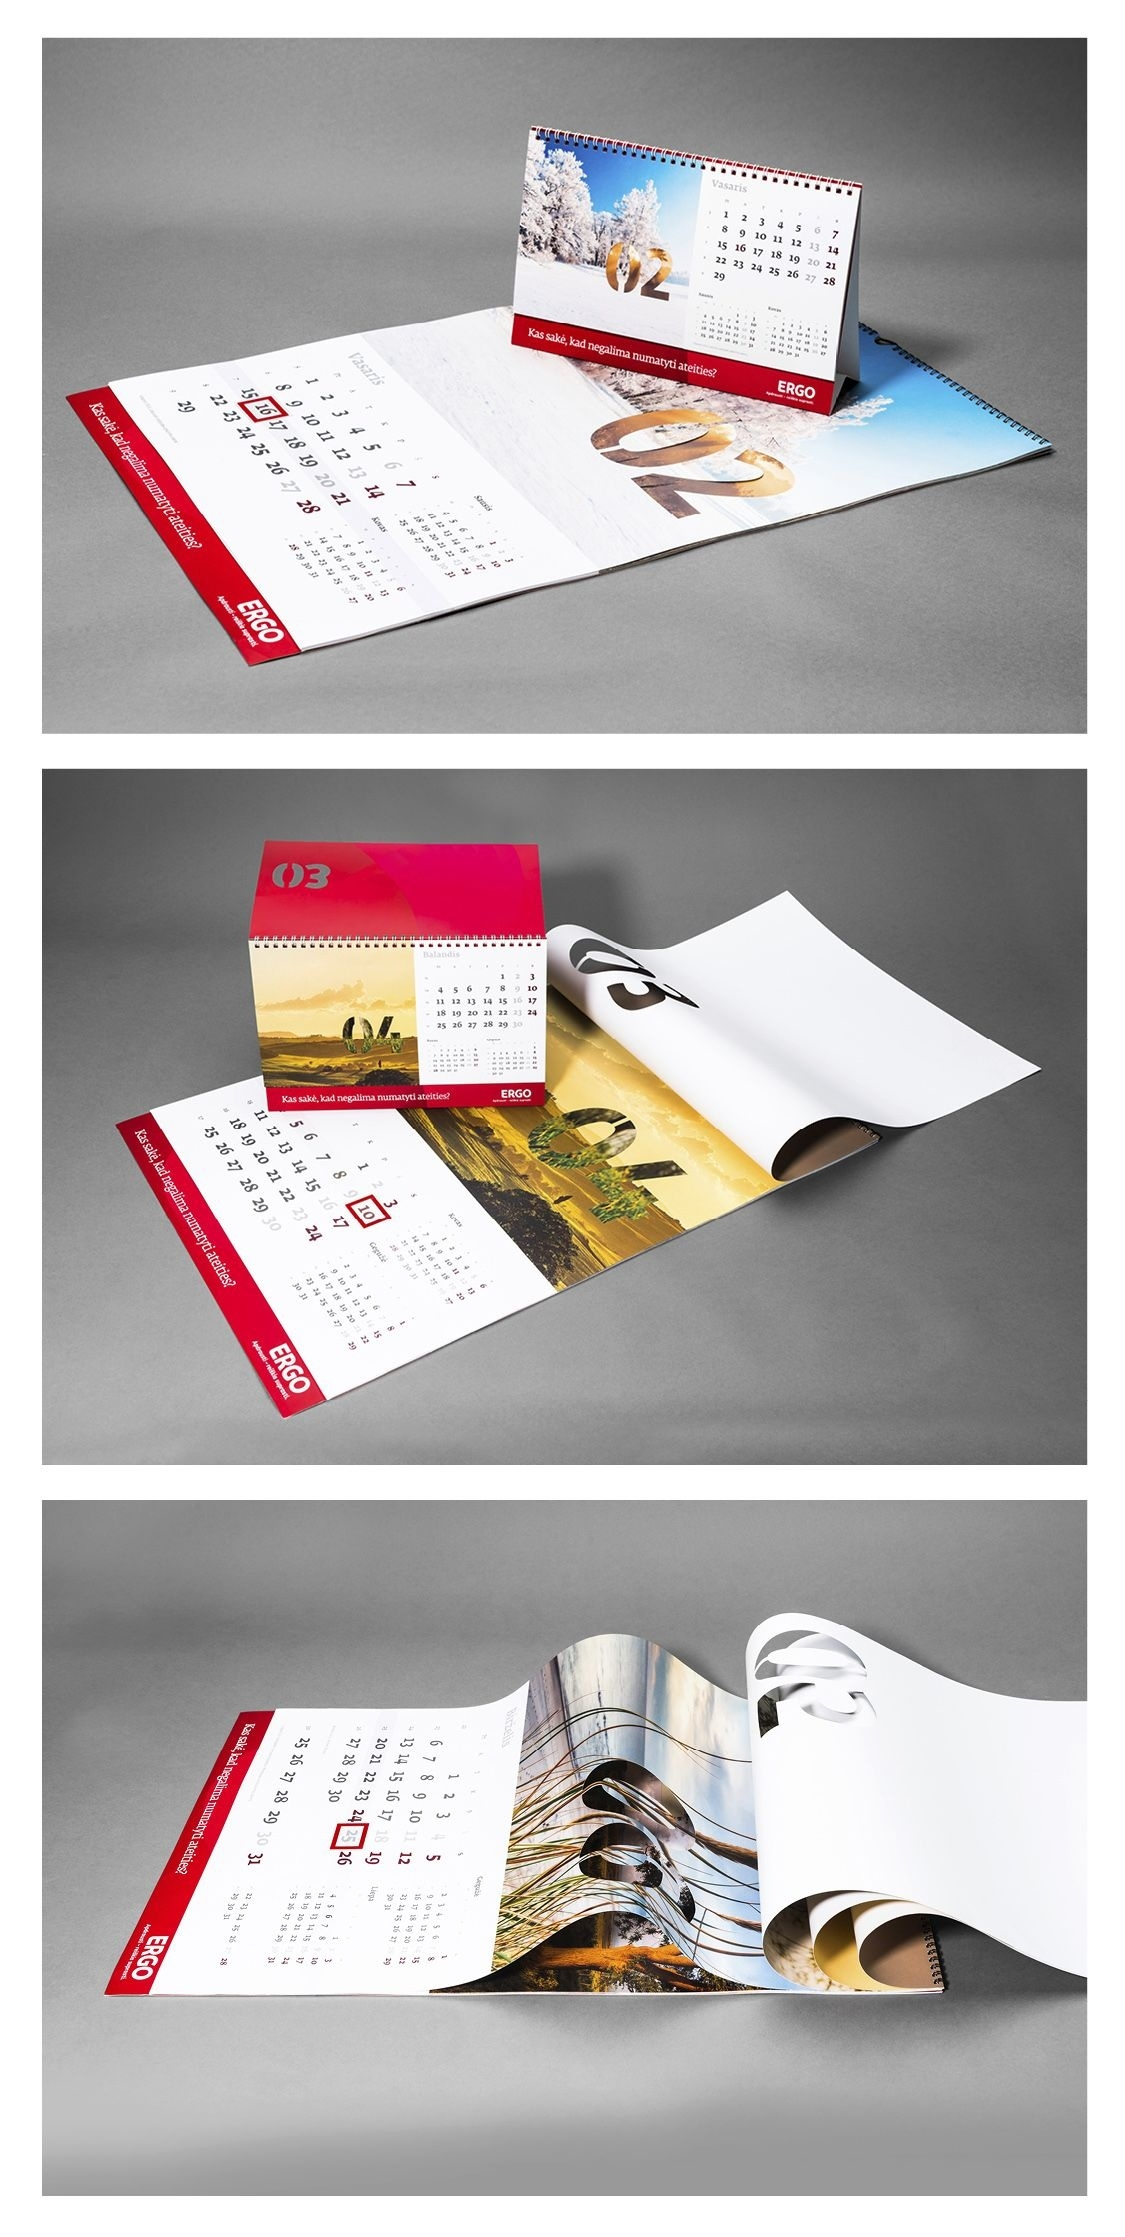 An Original Concept For A Calendar By An Insurance Company. Every_The Calendar Printing Company